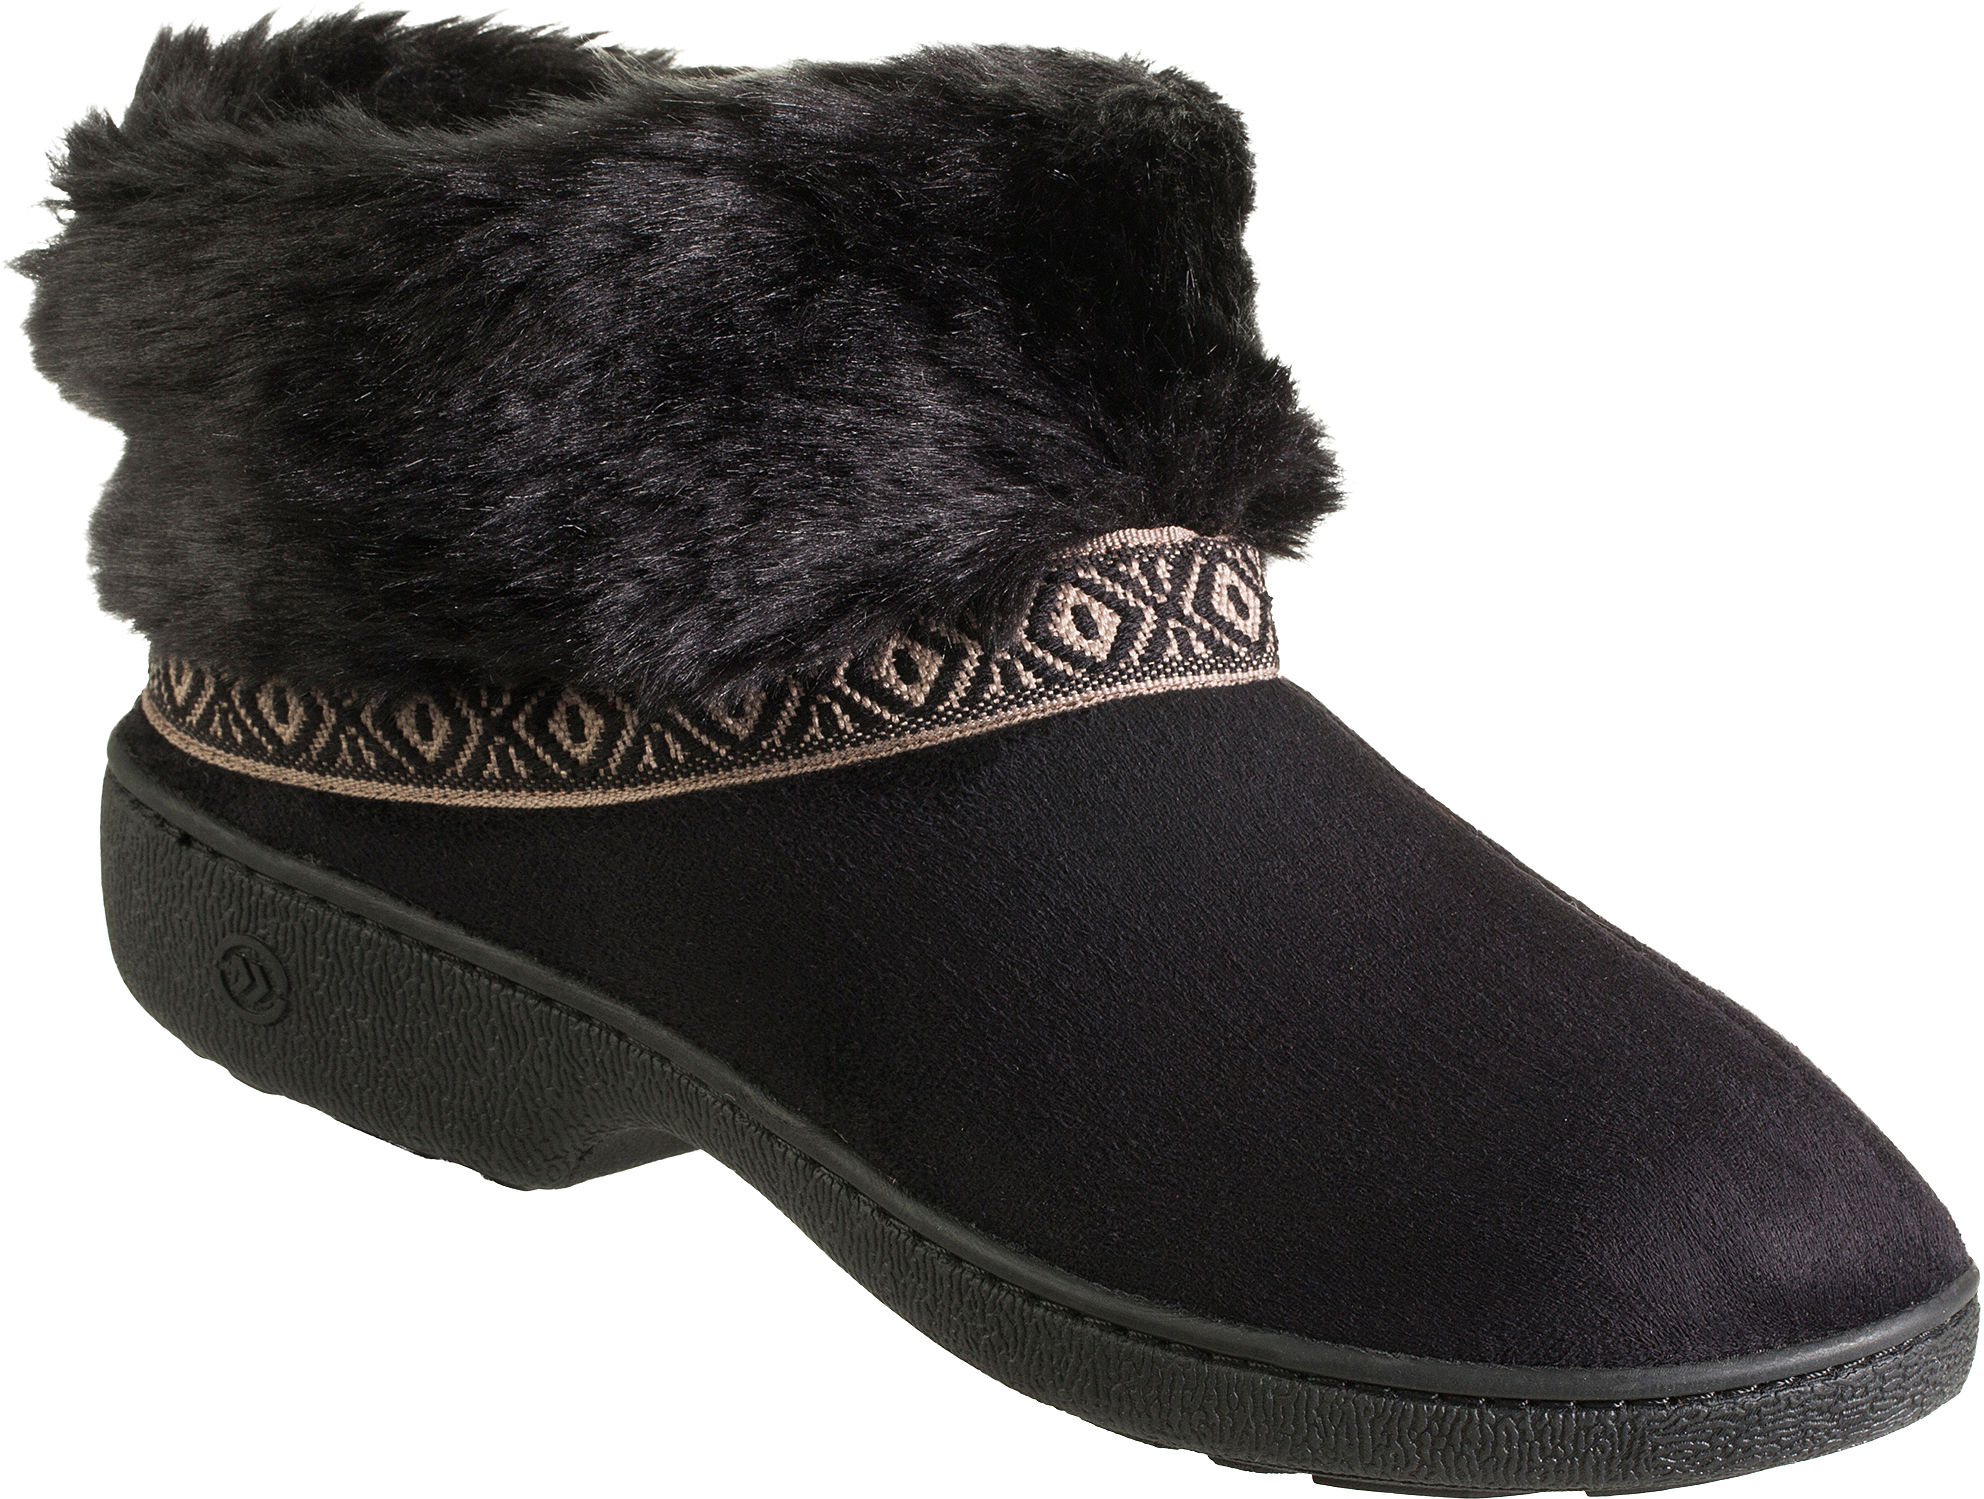 Isotoner Womens Microsuede Fur Boot Slippers | eBay